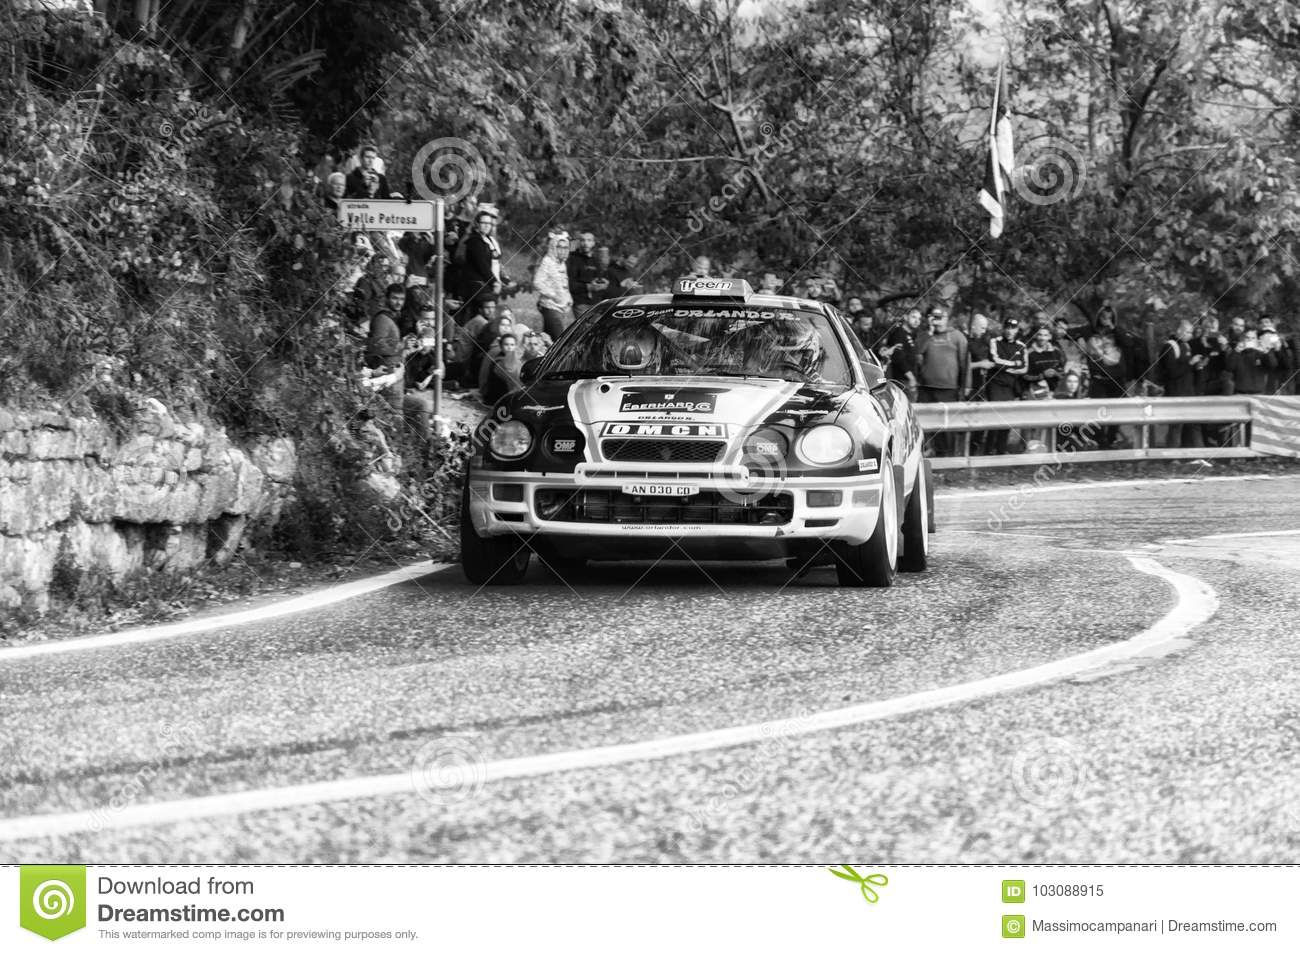 TOYOTA CELICA ST 205 1994 In Old Racing Car Rally THE LEGEND 2017 ...